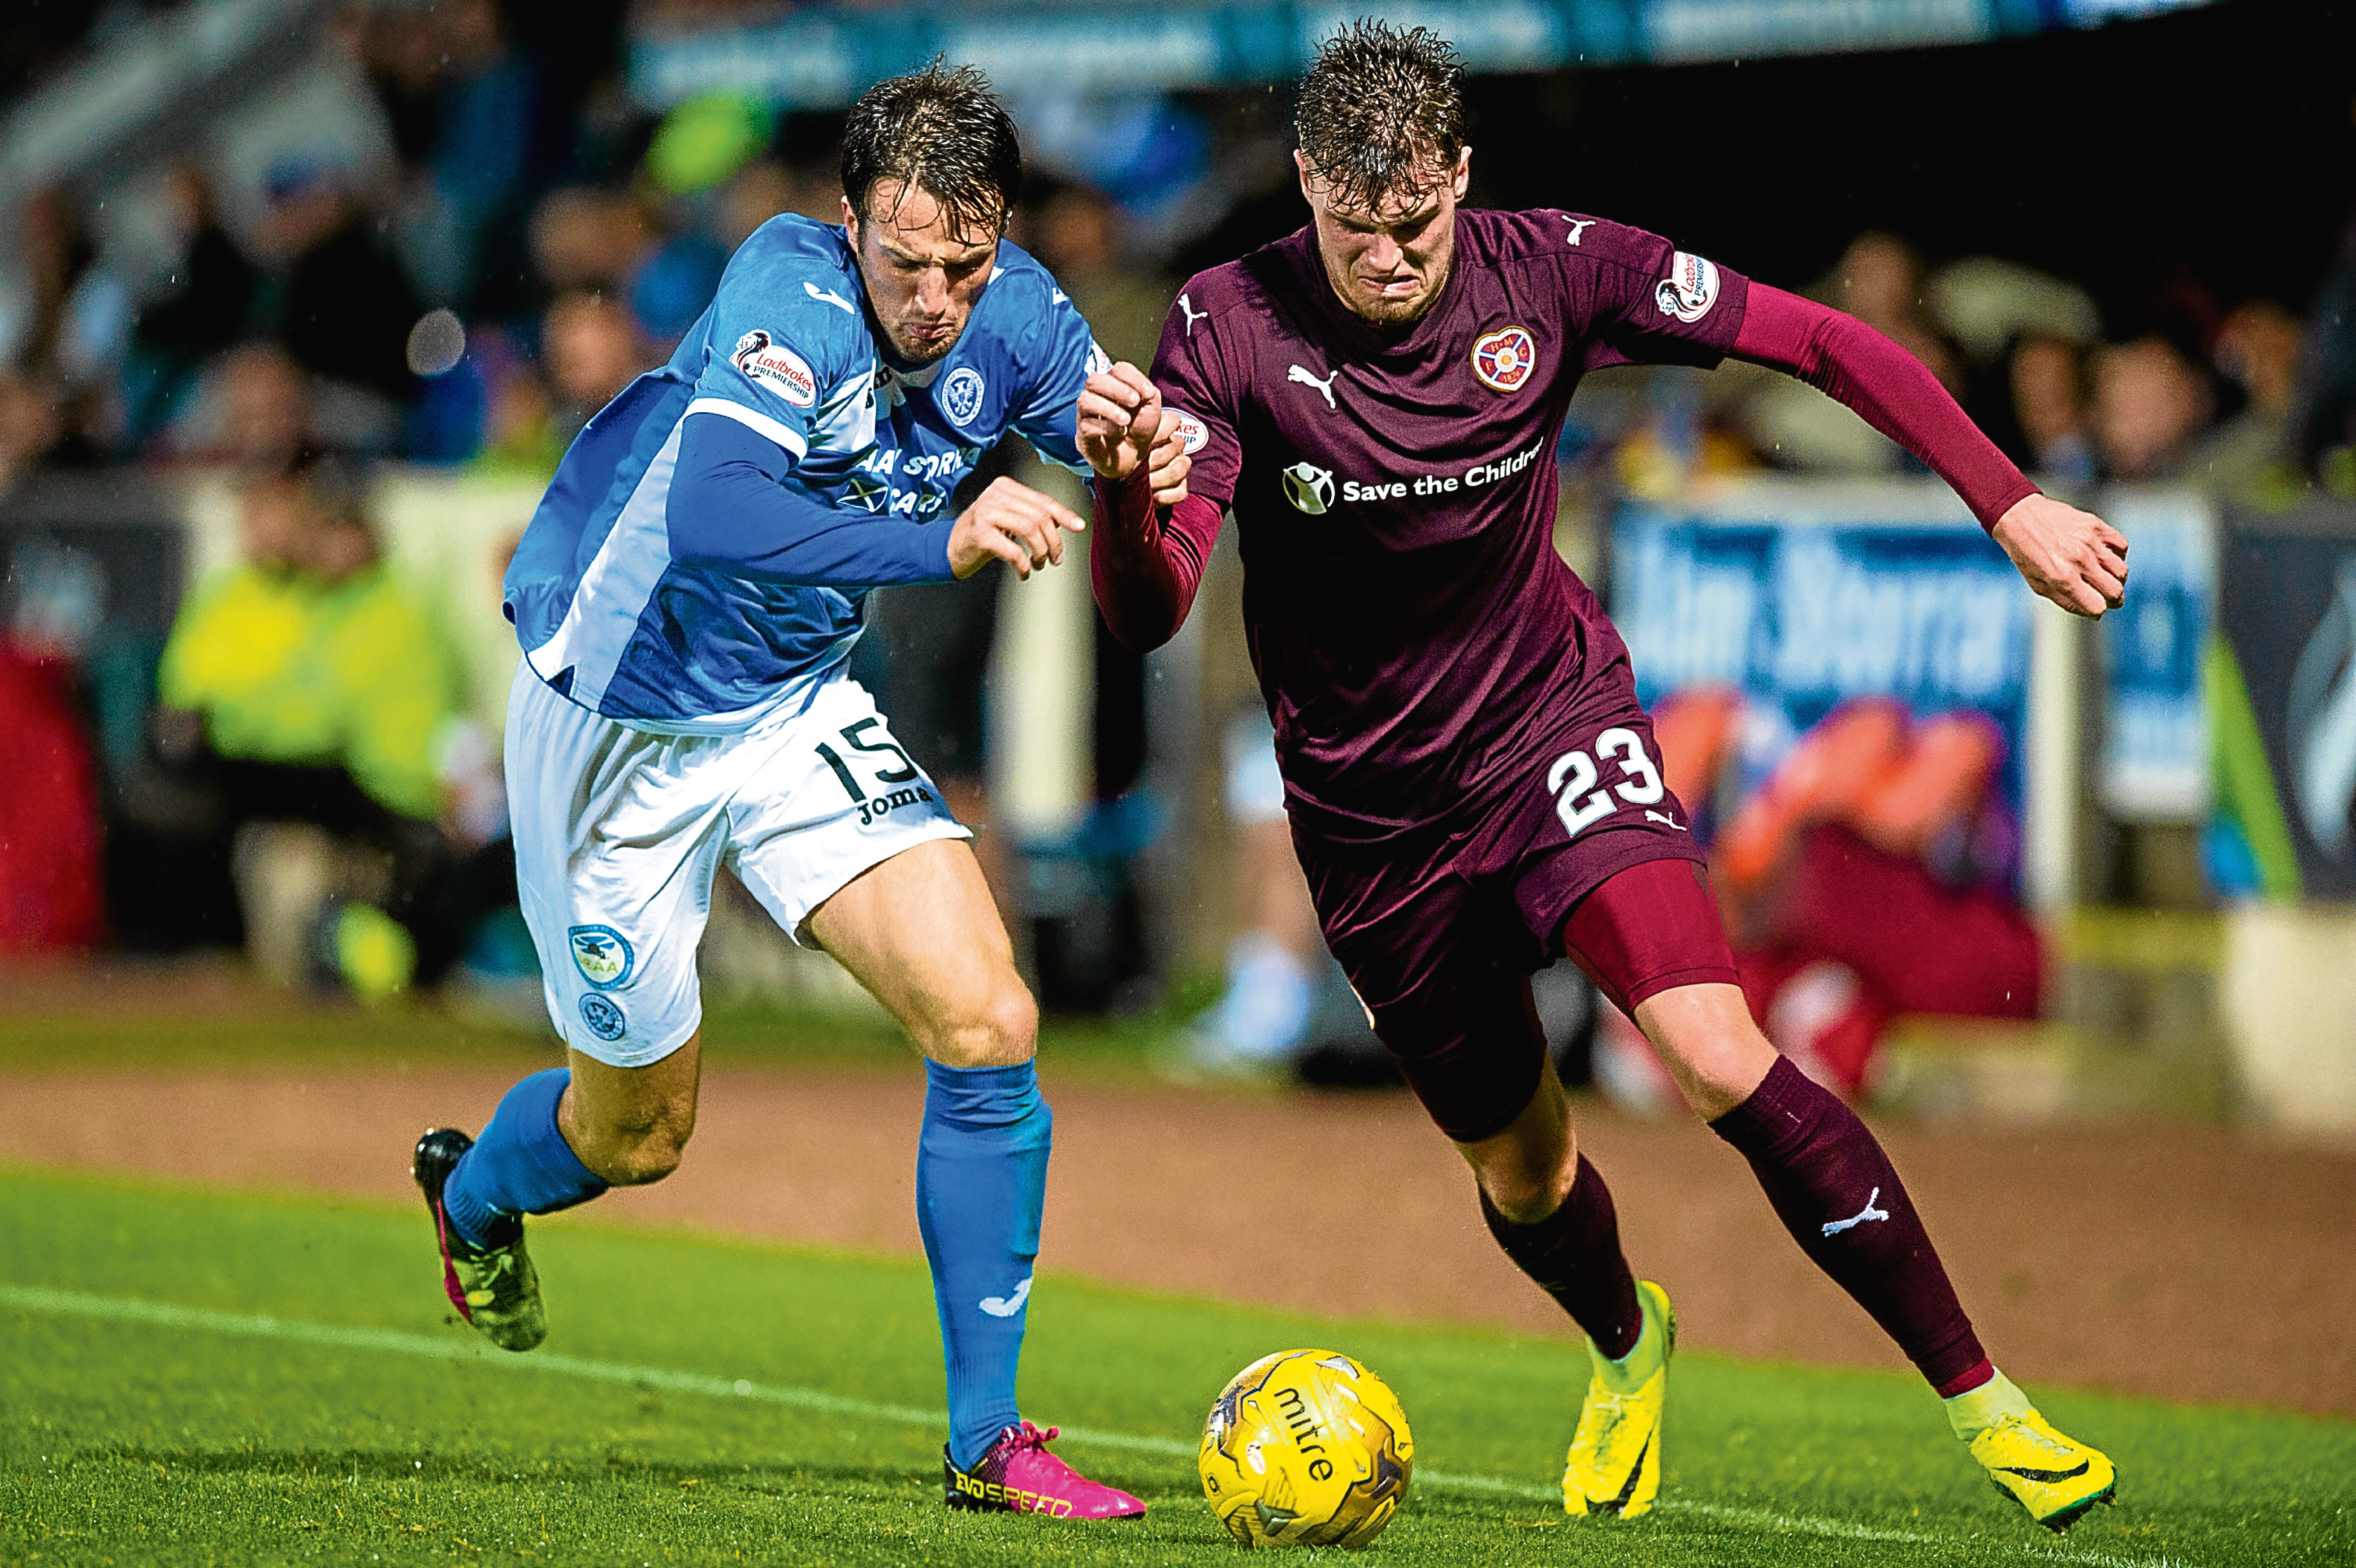 St Johnstone's Brad McKay and Hearts' Robbie Muirhead tussle for the ball